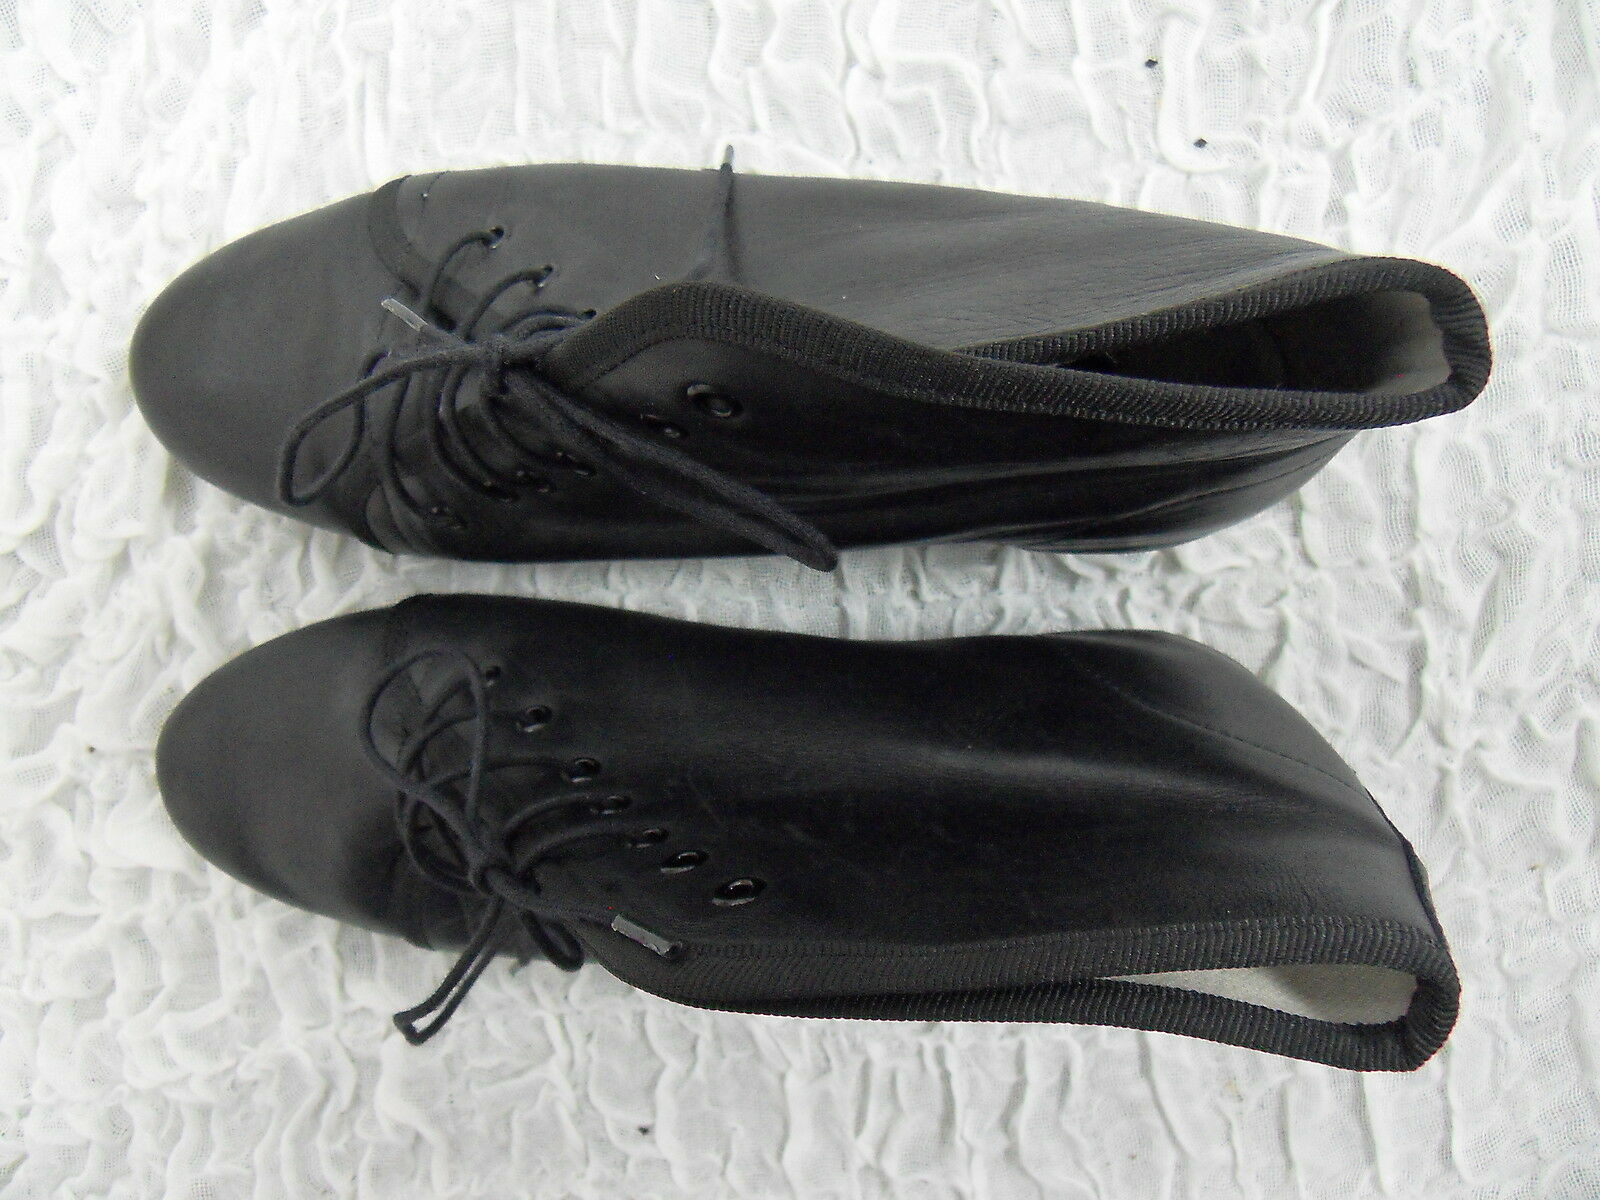 REPETTO PARIS schwarz 100% leather FRENCH lace up wedge ankle Stiefel Größe 38 7 EUC